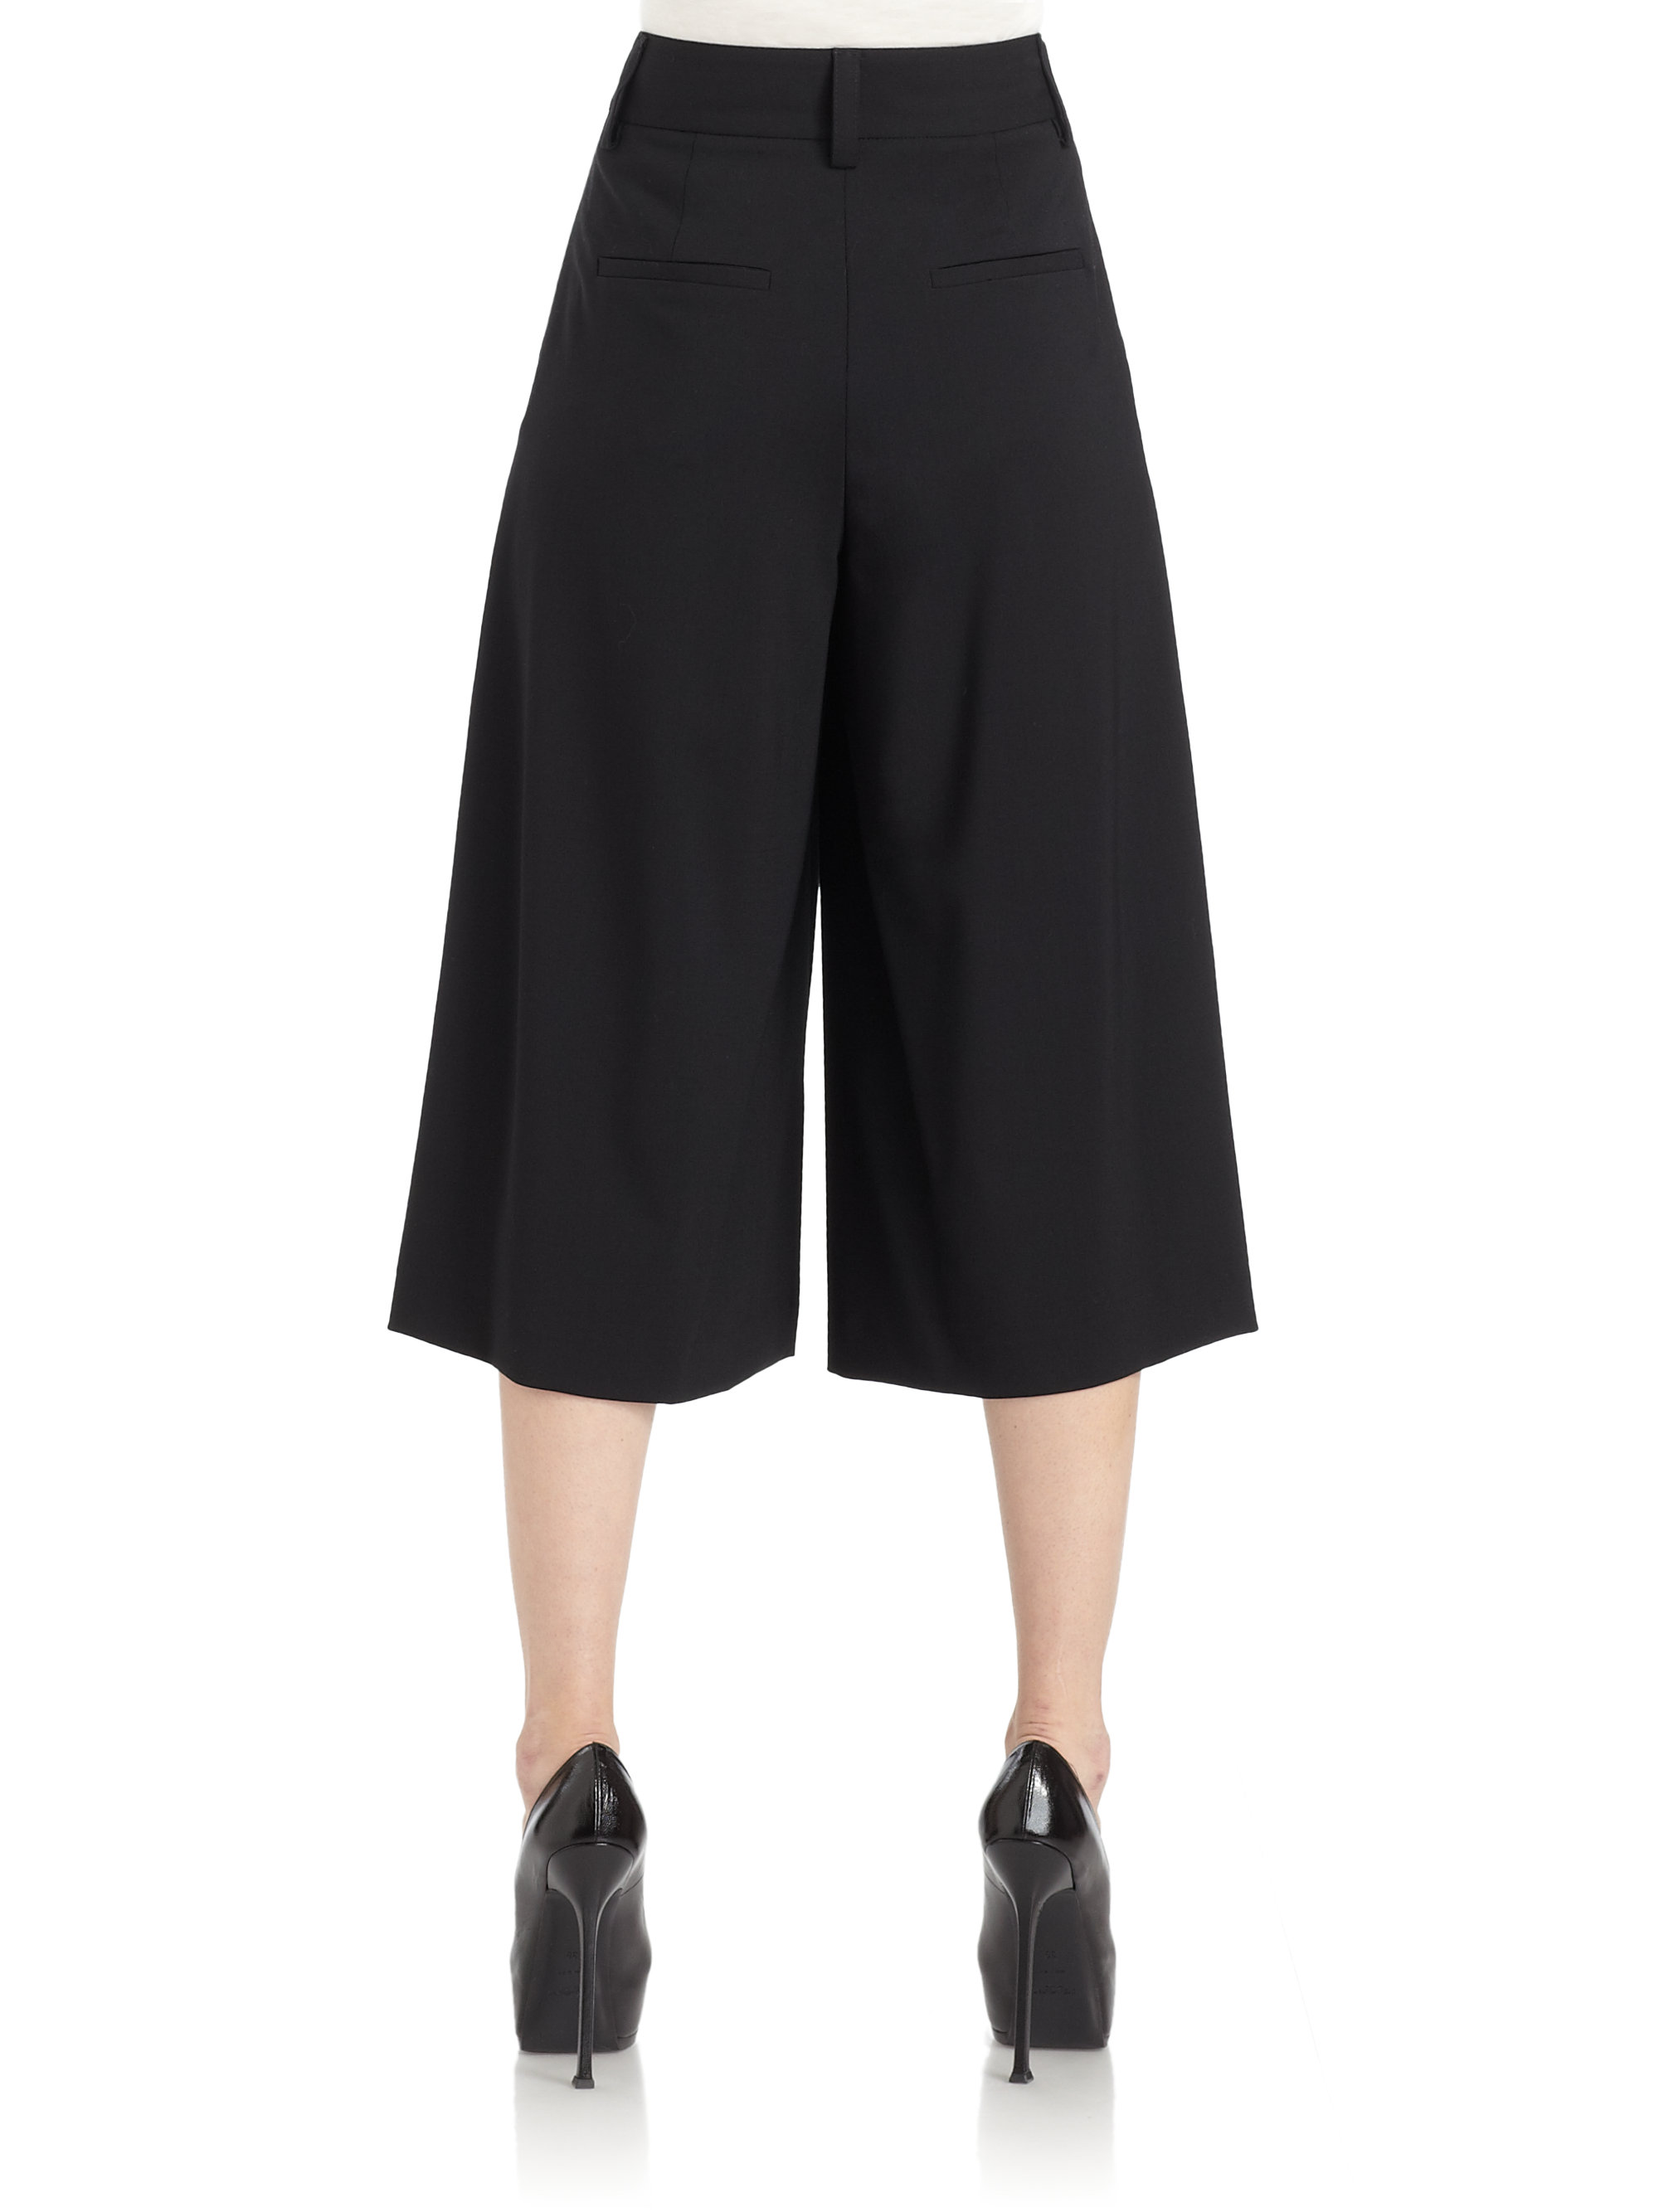 Alice   olivia Highwaist Gaucho Pants in Black | Lyst